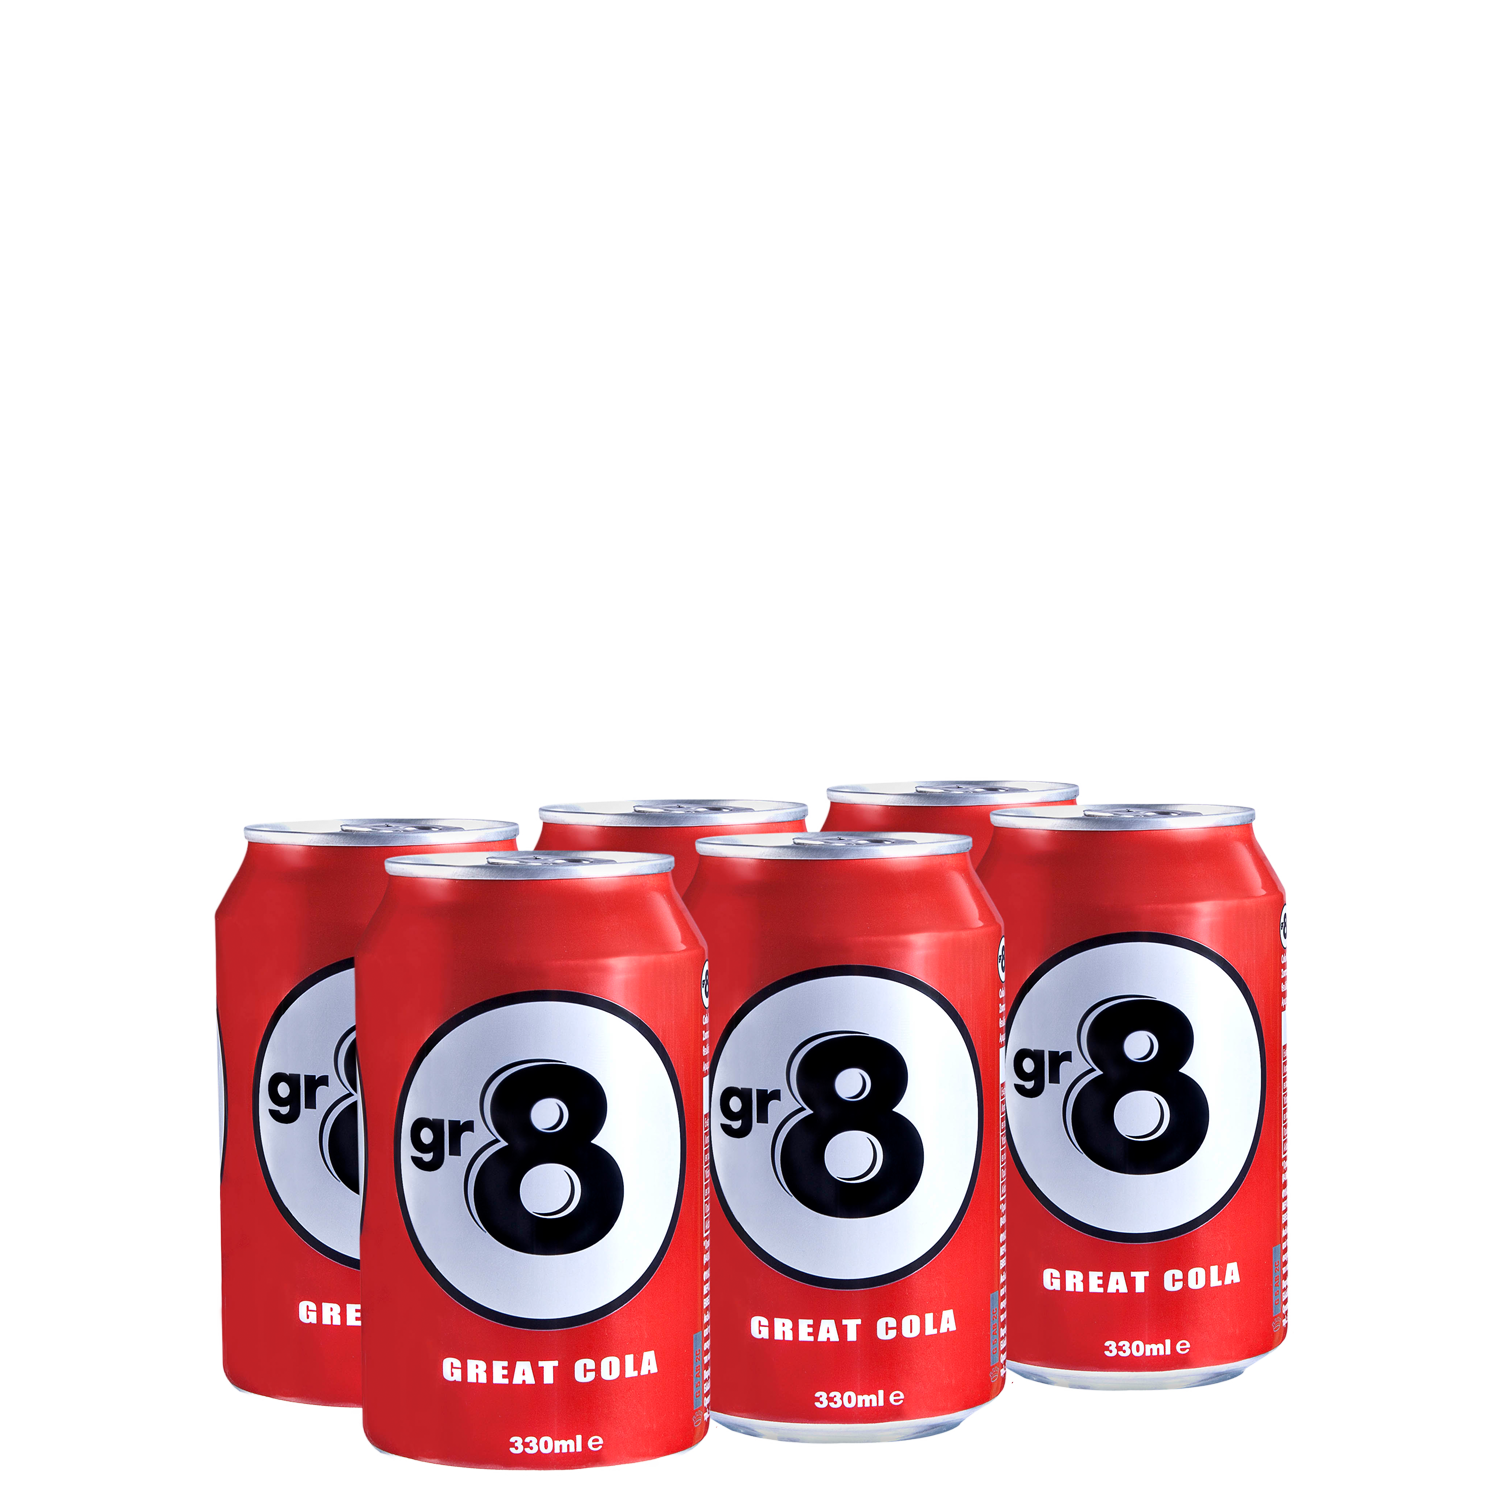 GR8 - Multi Pack - (6x330ml cans)